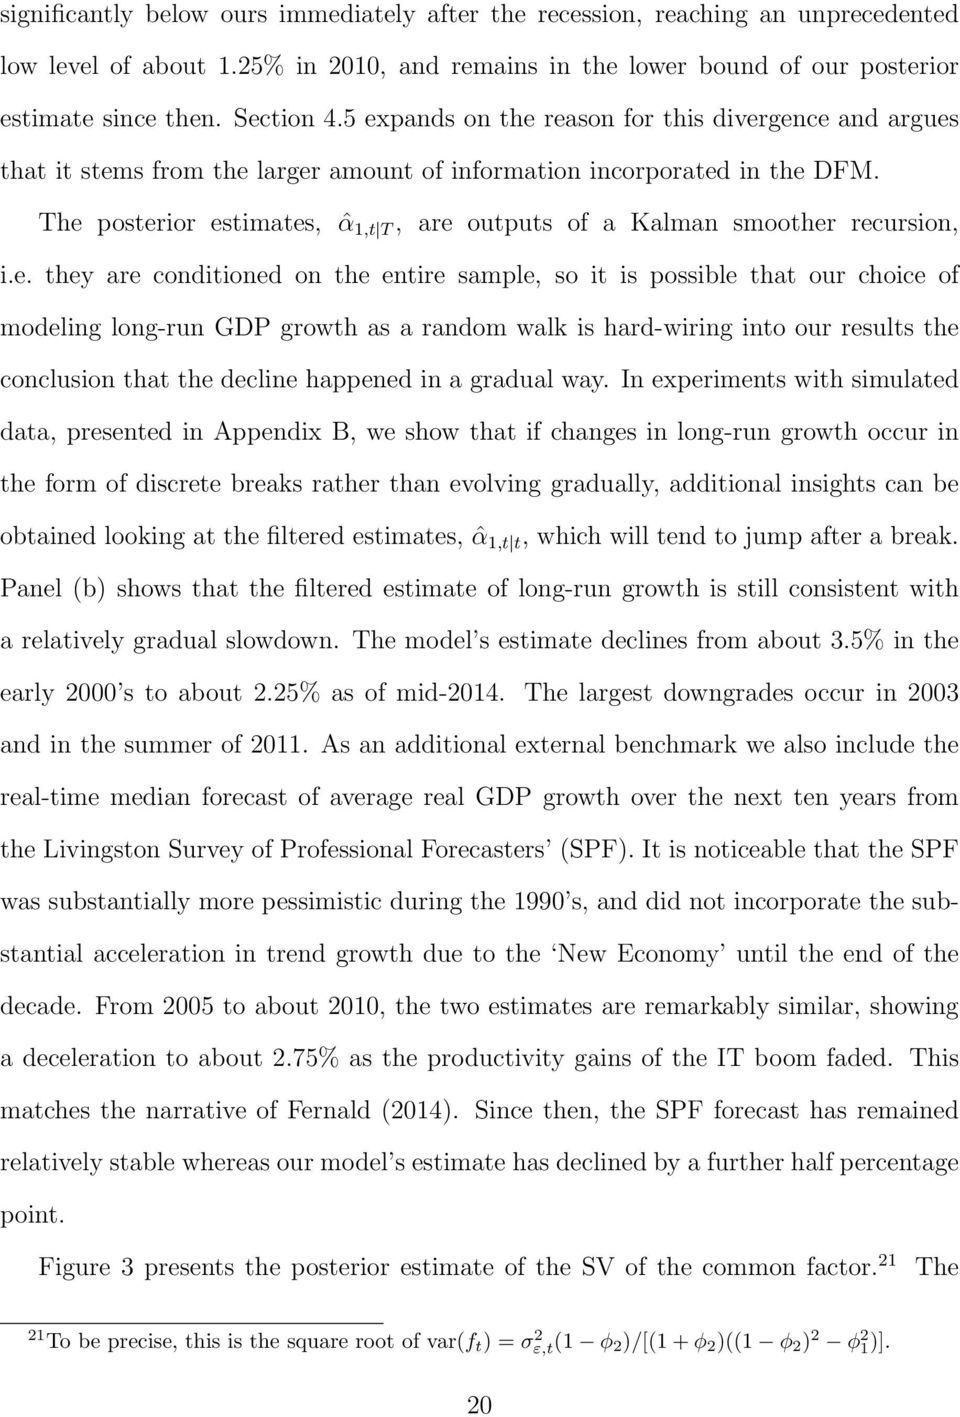 The posterior estimates, ˆα 1,t T, are outputs of a Kalman smoother recursion, i.e. they are conditioned on the entire sample, so it is possible that our choice of modeling long-run GDP growth as a